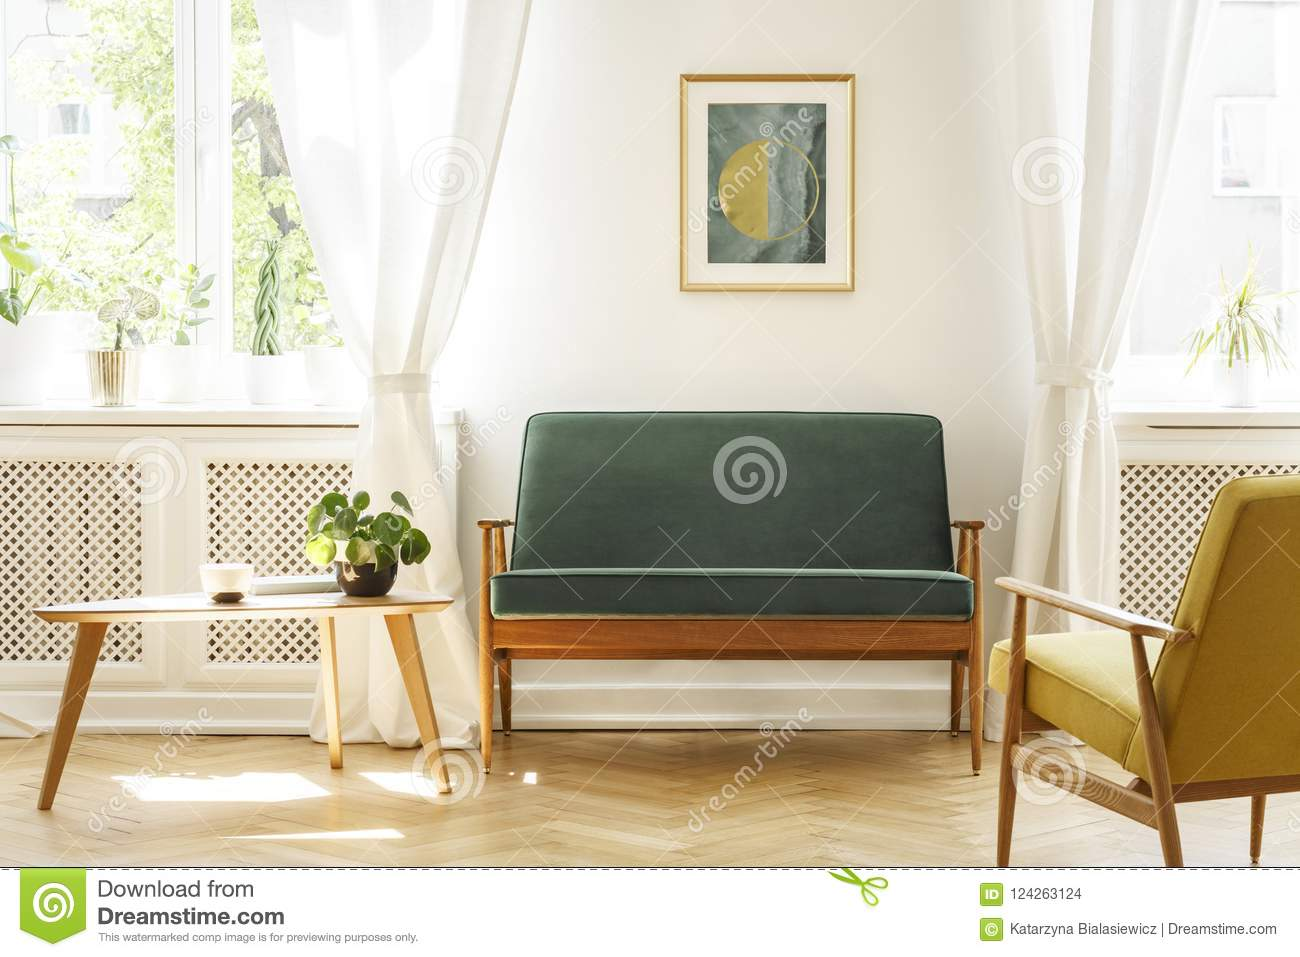 Awesome Real Photo Of A Mid Century Living Room Interior With A Sofa Pdpeps Interior Chair Design Pdpepsorg